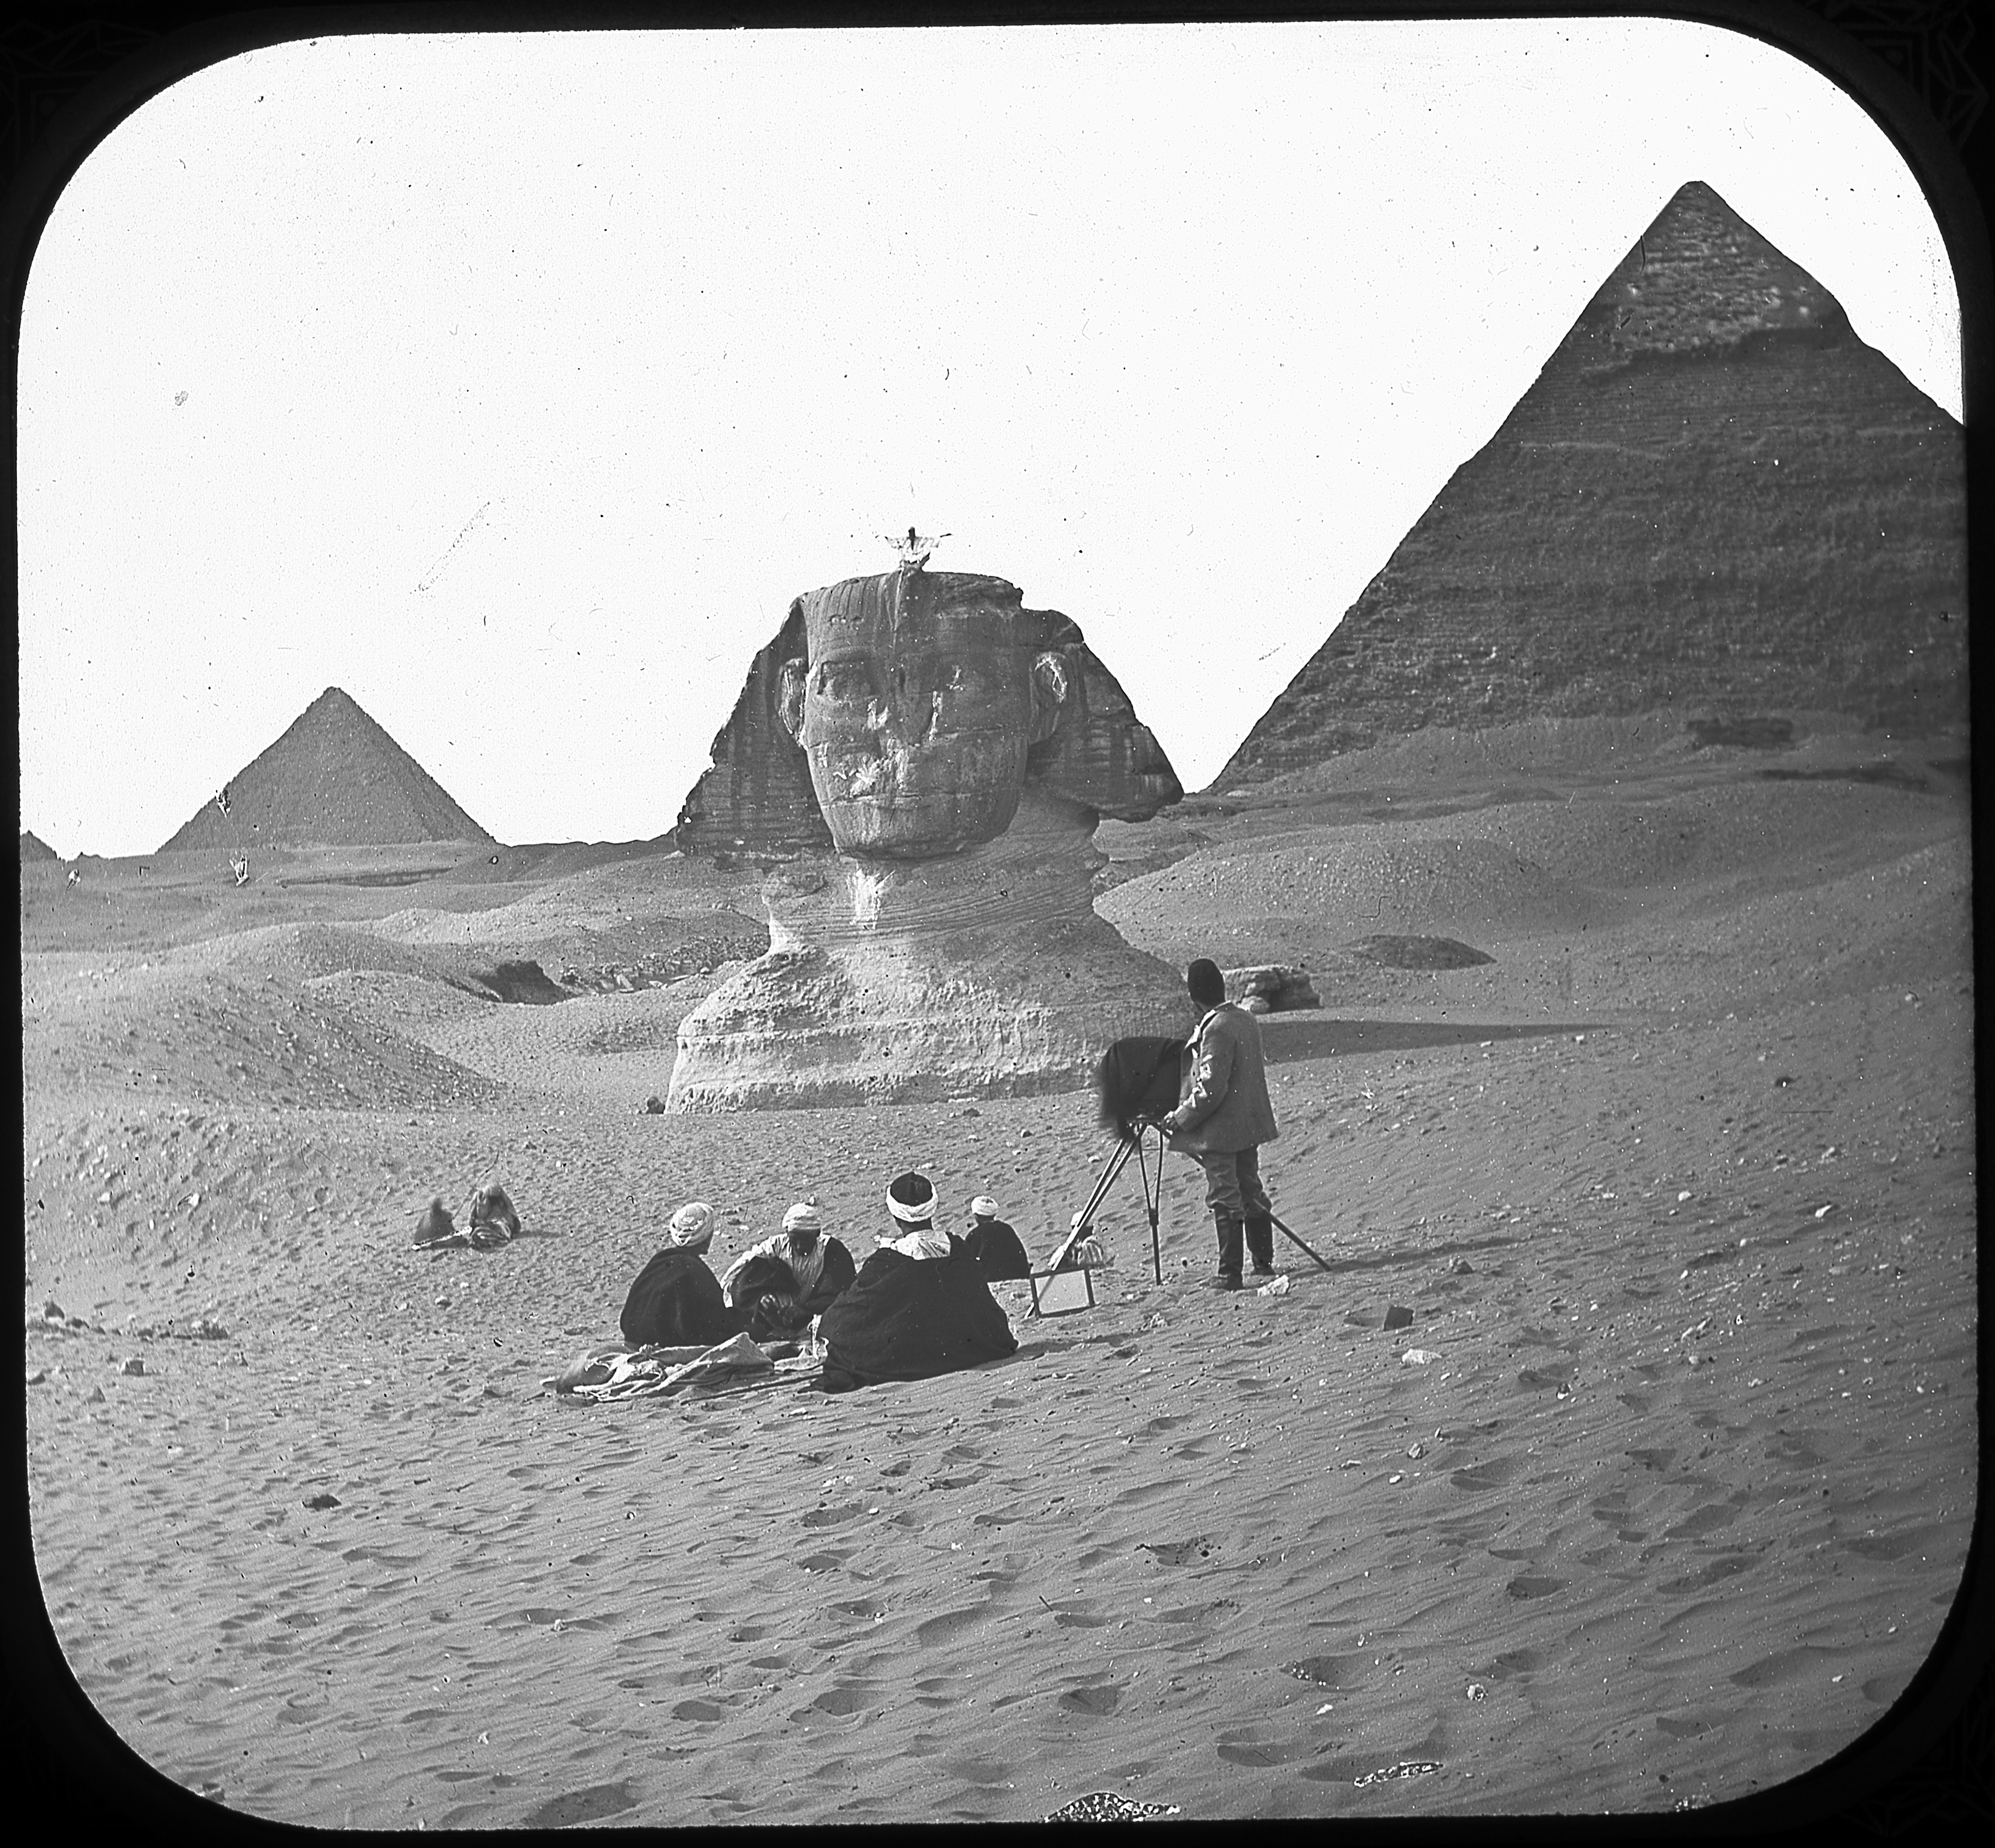 Black and white image of a photographer capturing a person sitting atop the at Sphinx, with the Pyramid of Chephren in the background